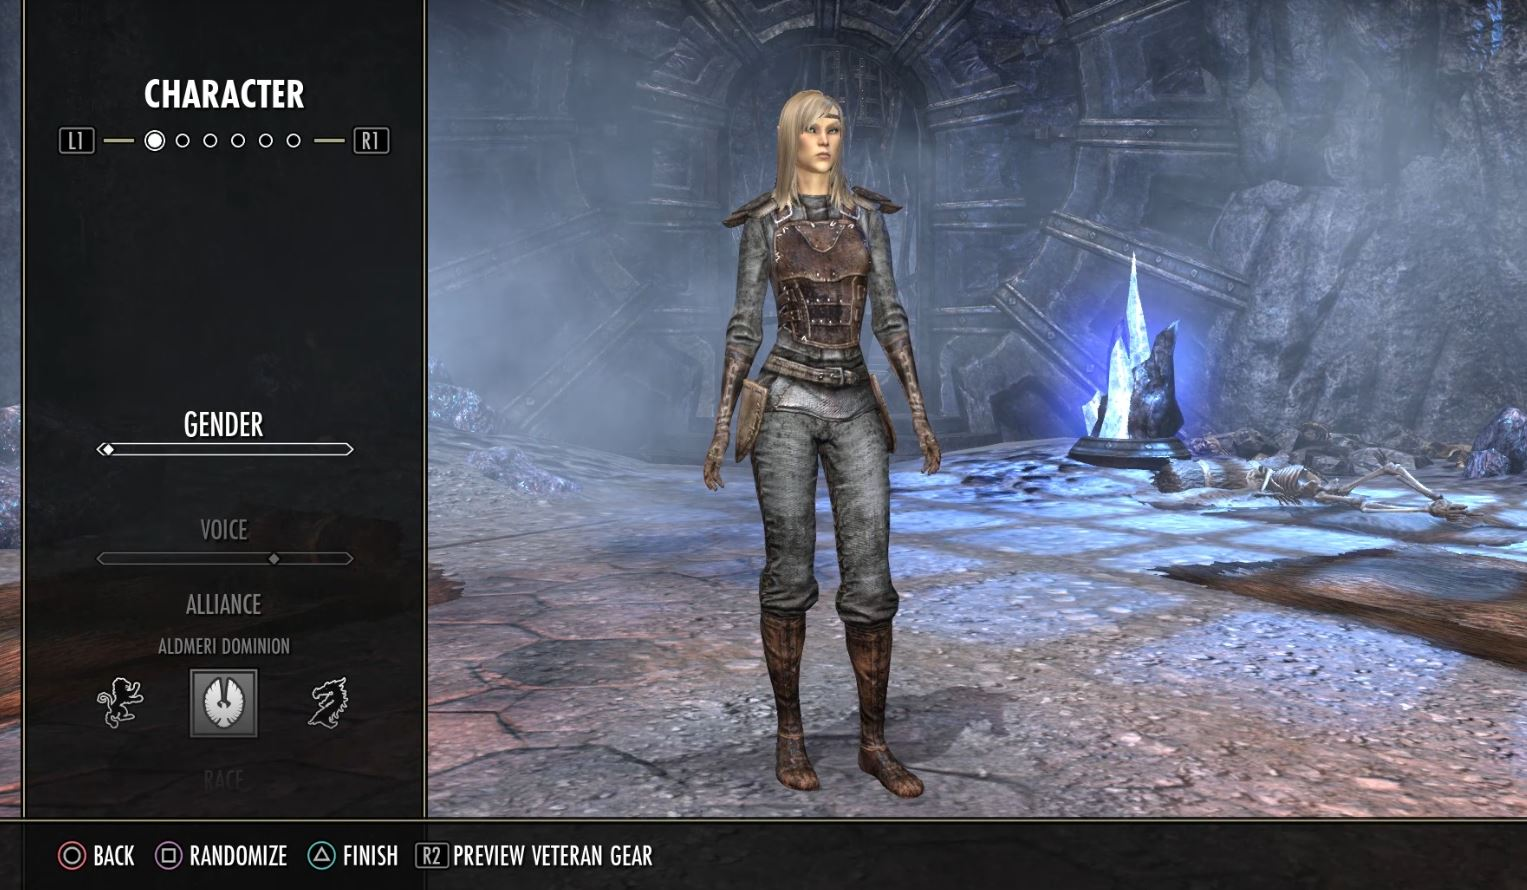 Elder Scrolls Online: Tamriel Unlimited | Creating a female High Elf character on PS4